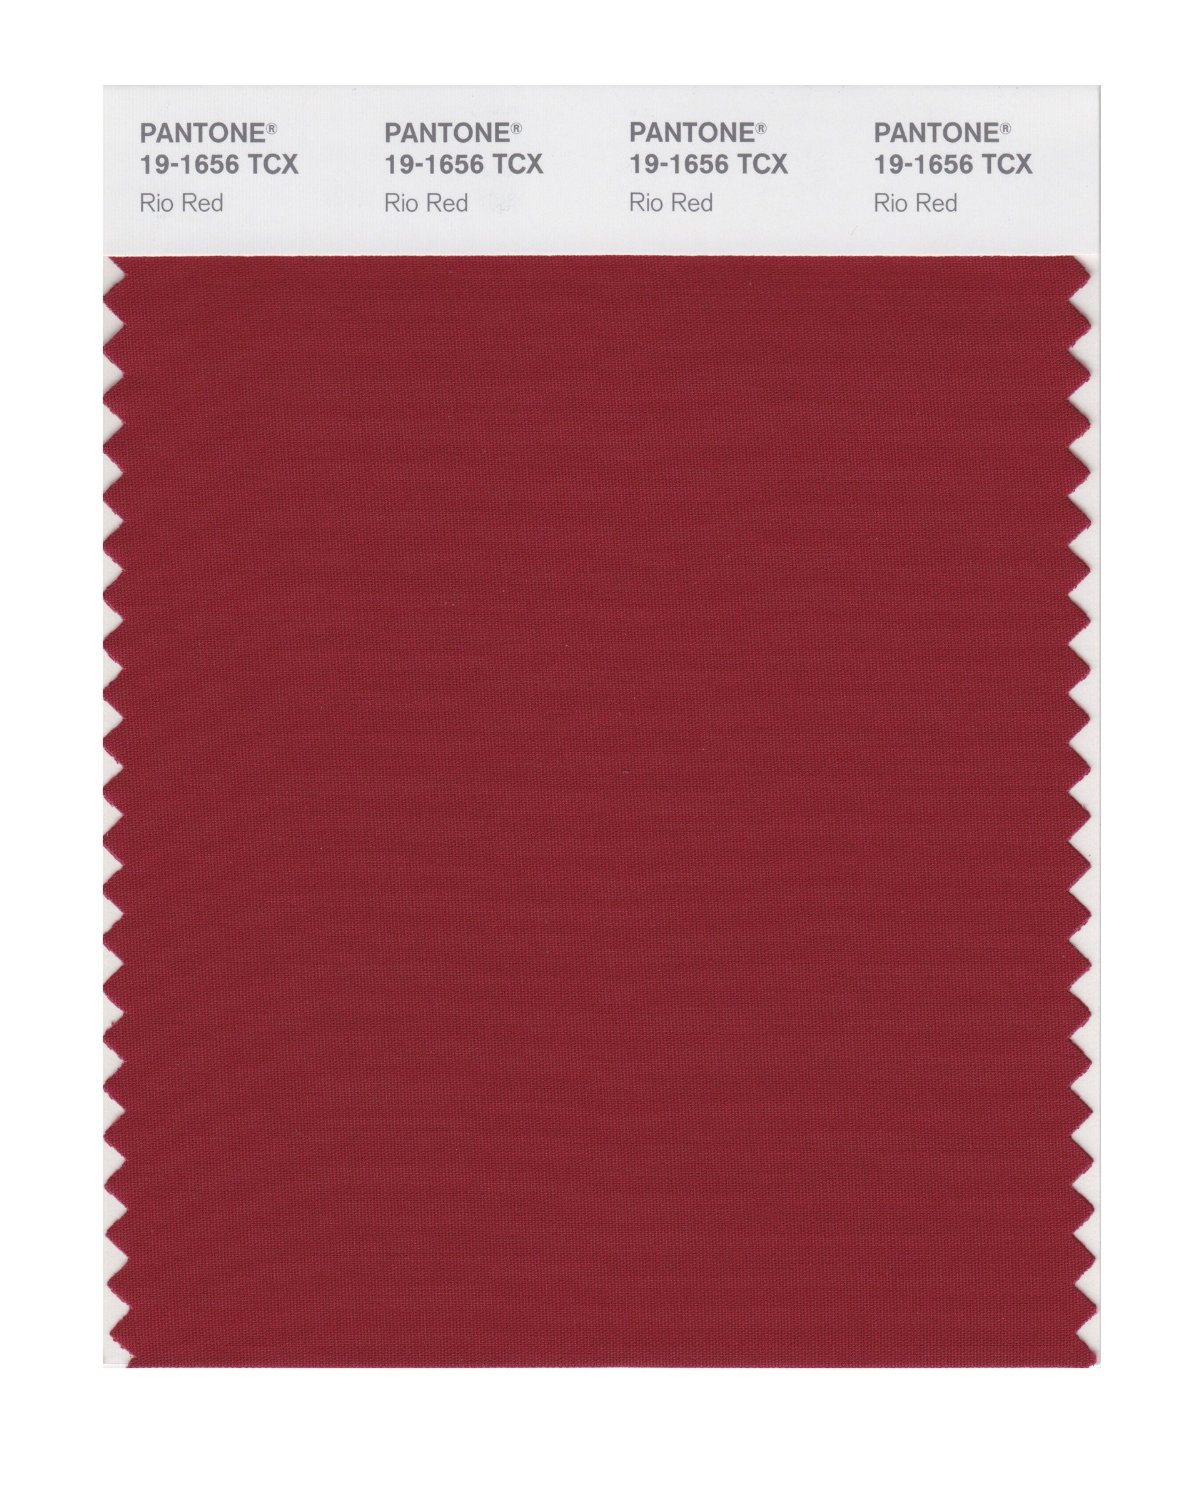 Pantone Smart Swatch 19-1656 Rio Red